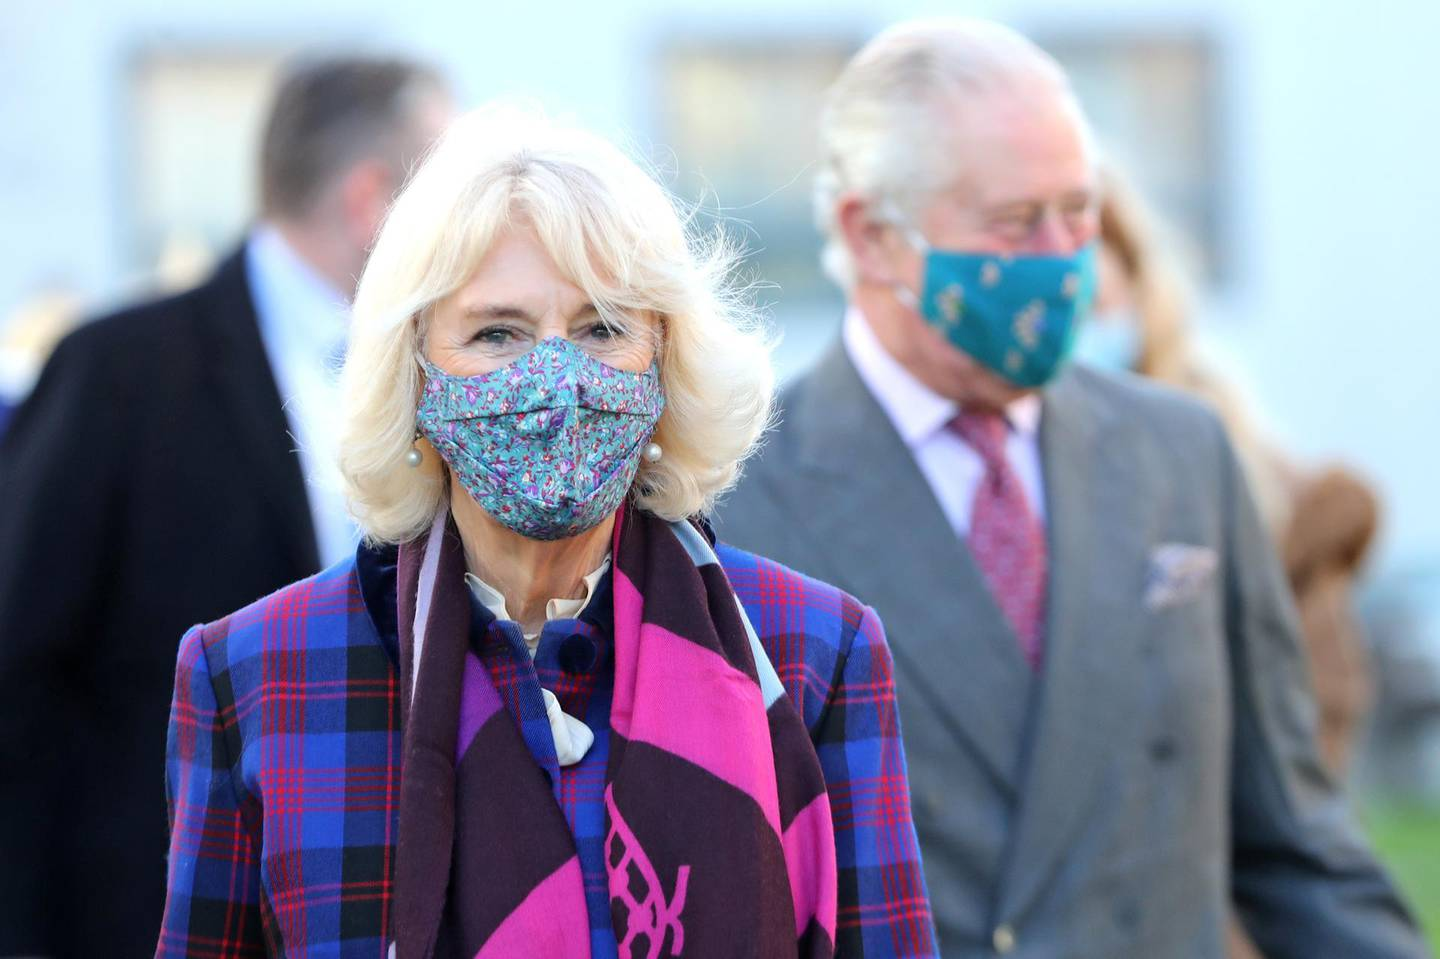 Britain's Prince Charles, Prince of Wales and Camilla, Duchess of Cornwall visit a vaccination centre at Gloucestershire Royal Hospital, in Gloucester, Britain December 17, 2020. Chris Jackson/Pool via REUTERS